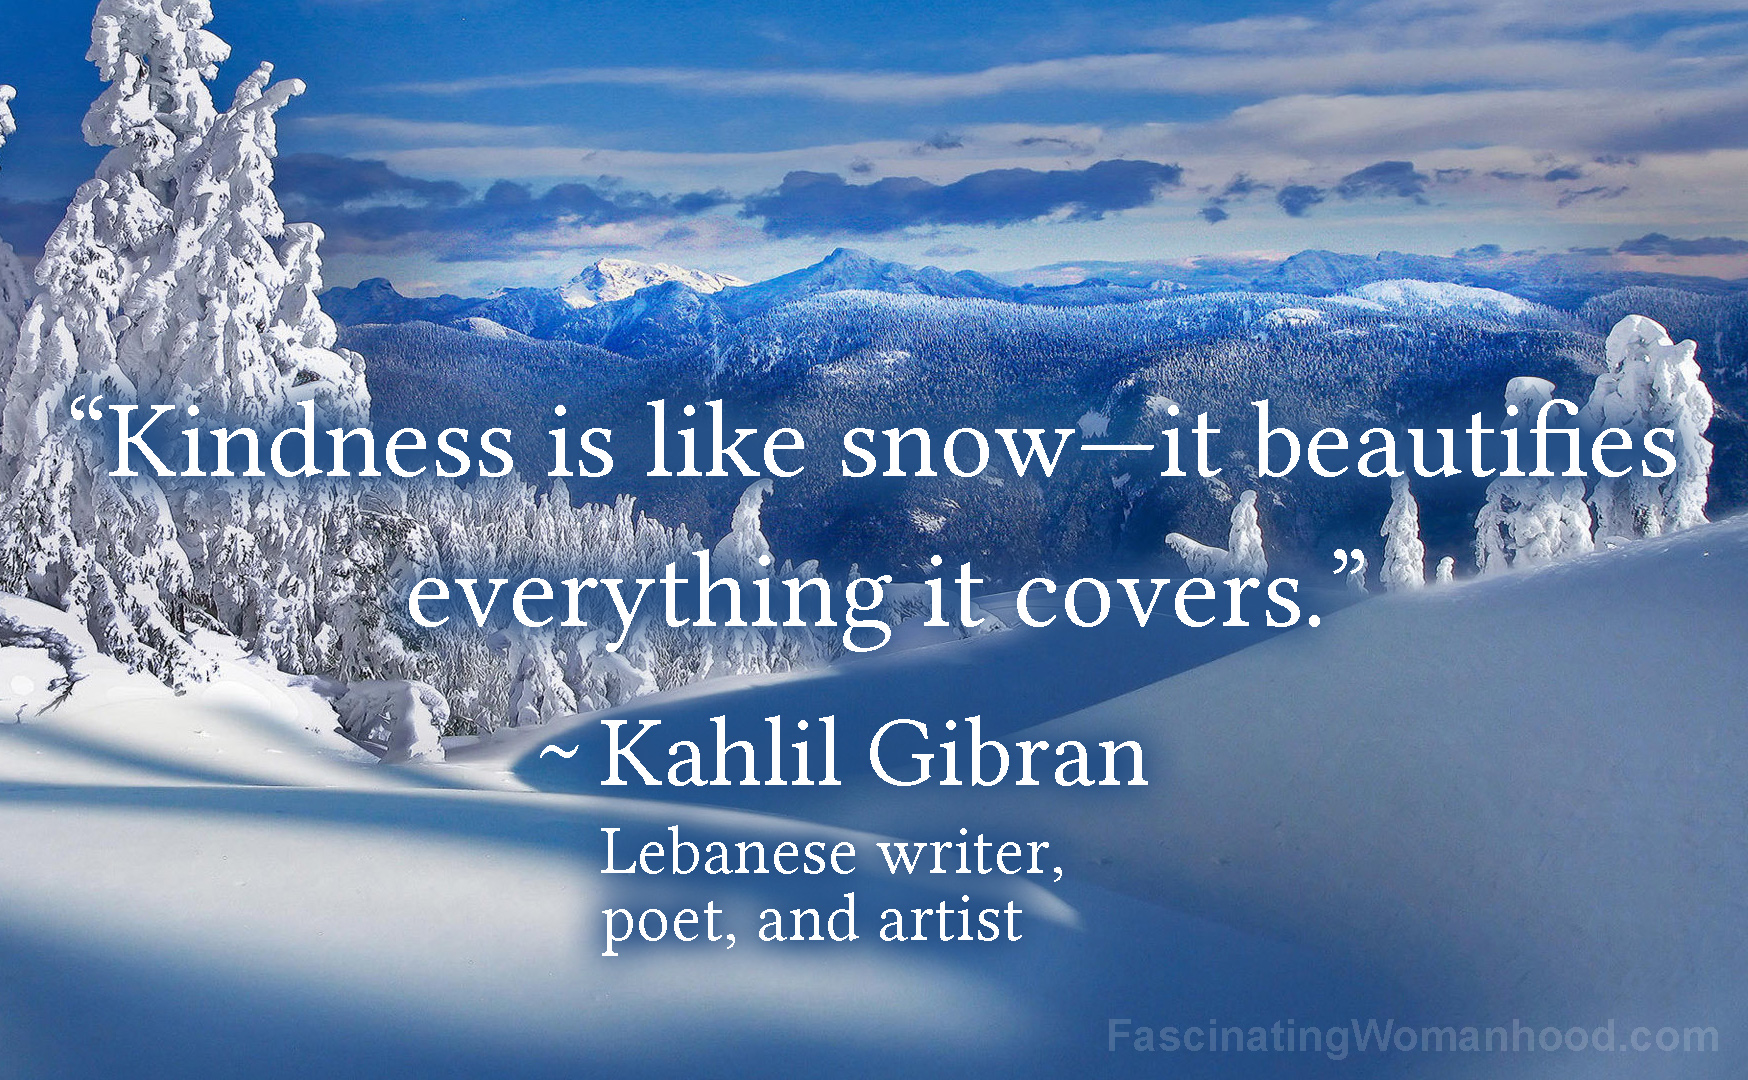 A Quote by Kahlil Gibran.jpg